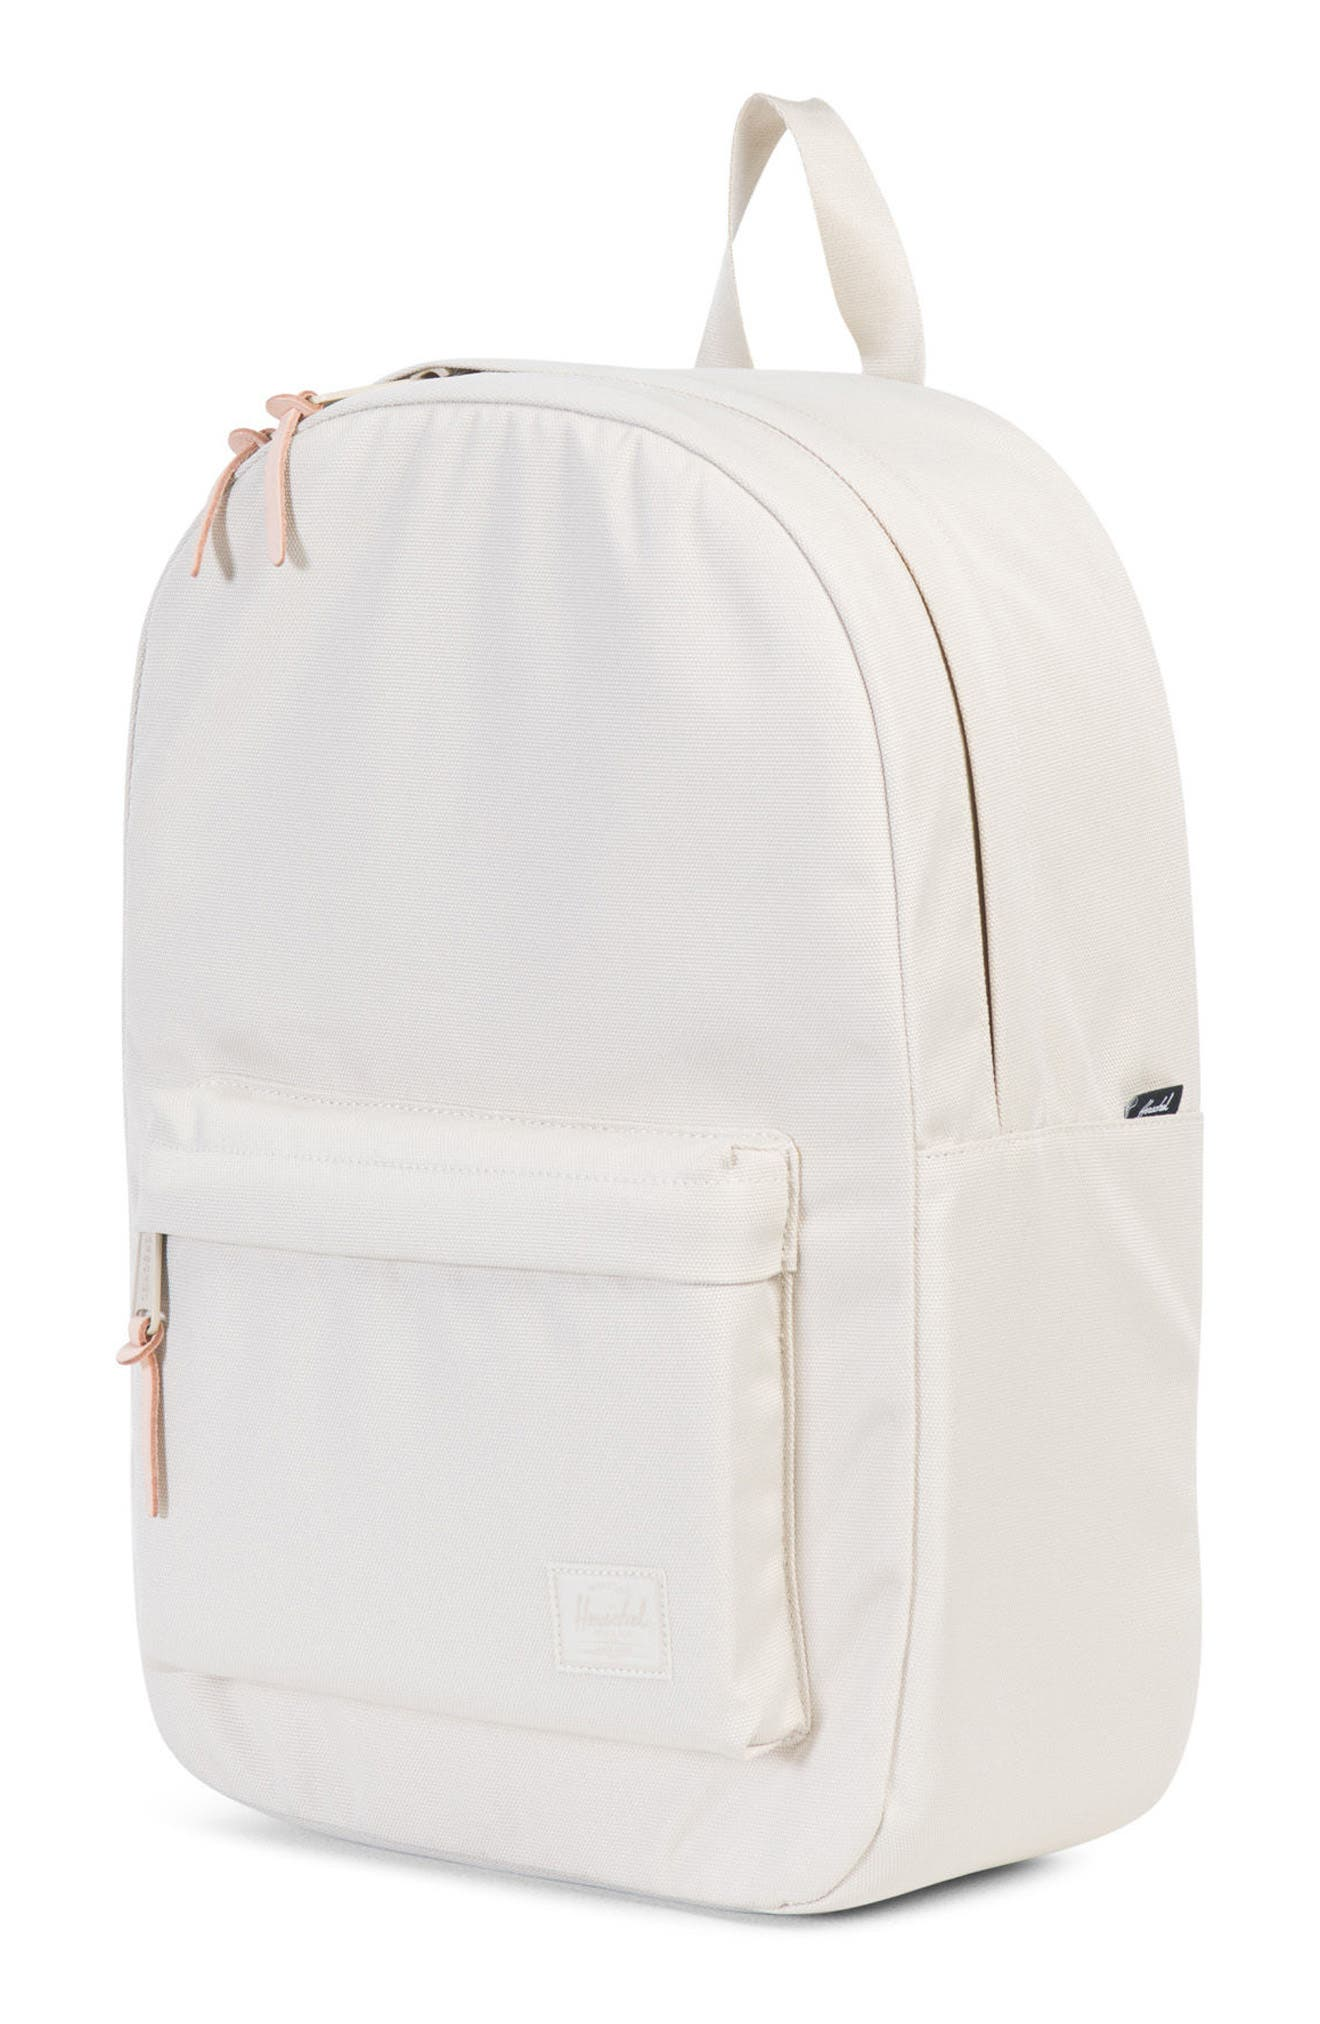 Winlaw Backpack,                             Alternate thumbnail 4, color,                             122